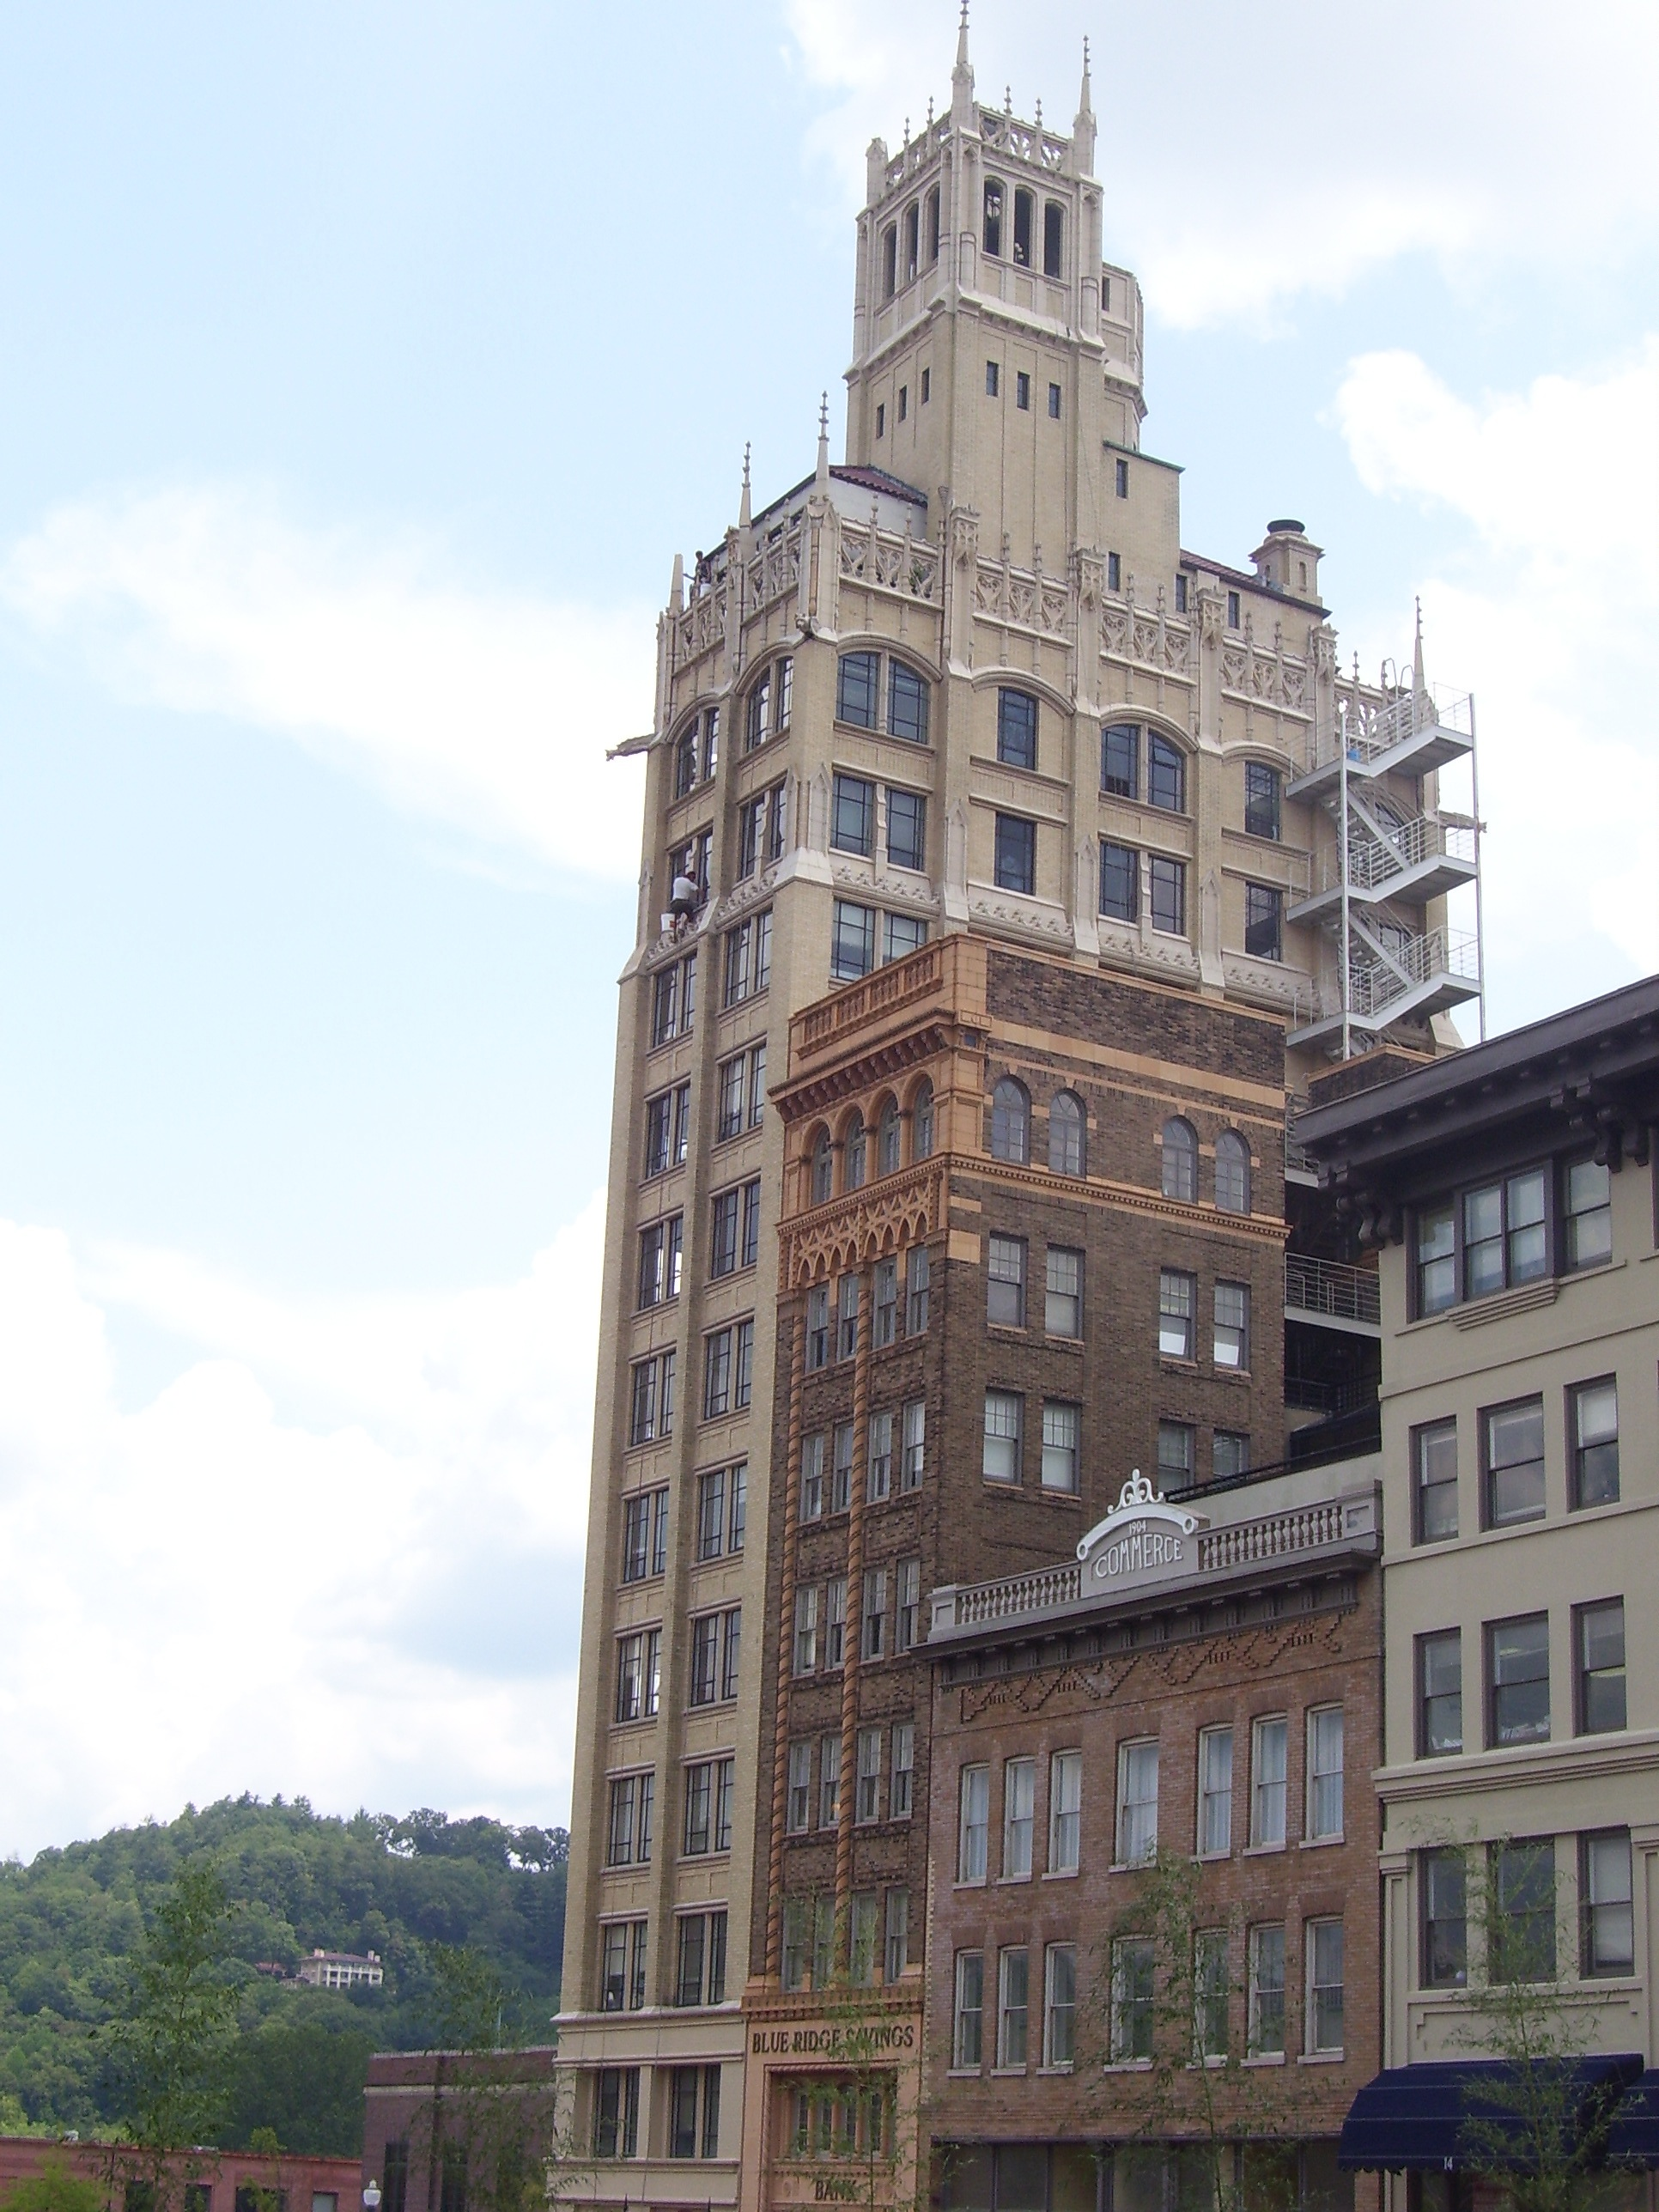 The Westall Building - Asheville, NC - Built in 1925 - 8 Stories - Spanish Colonial Revival Style - Commercial Office Use